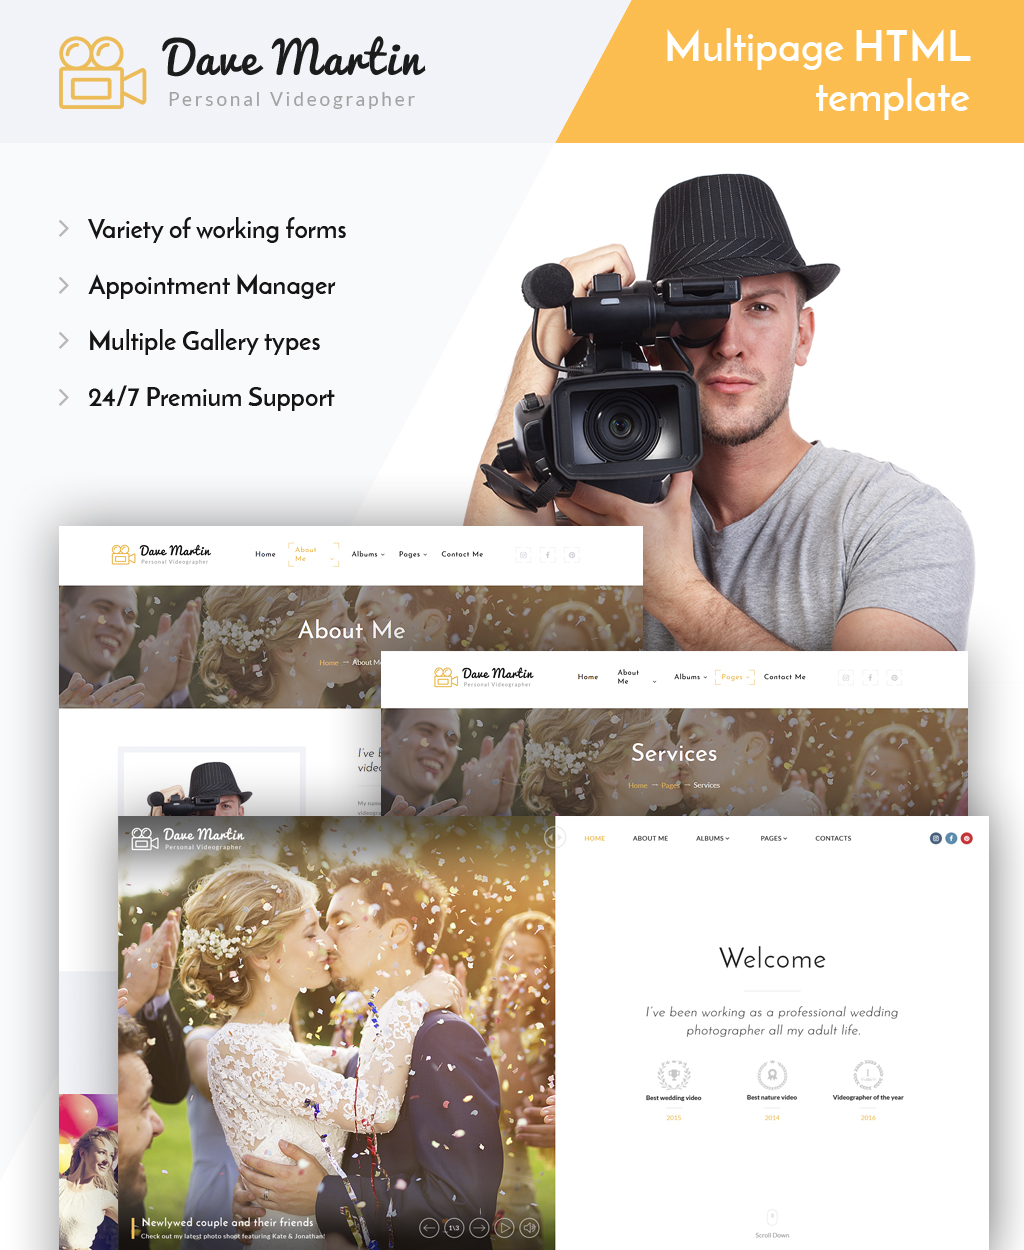 Dave Martin - Videographer Responsive HTML5 Website Template